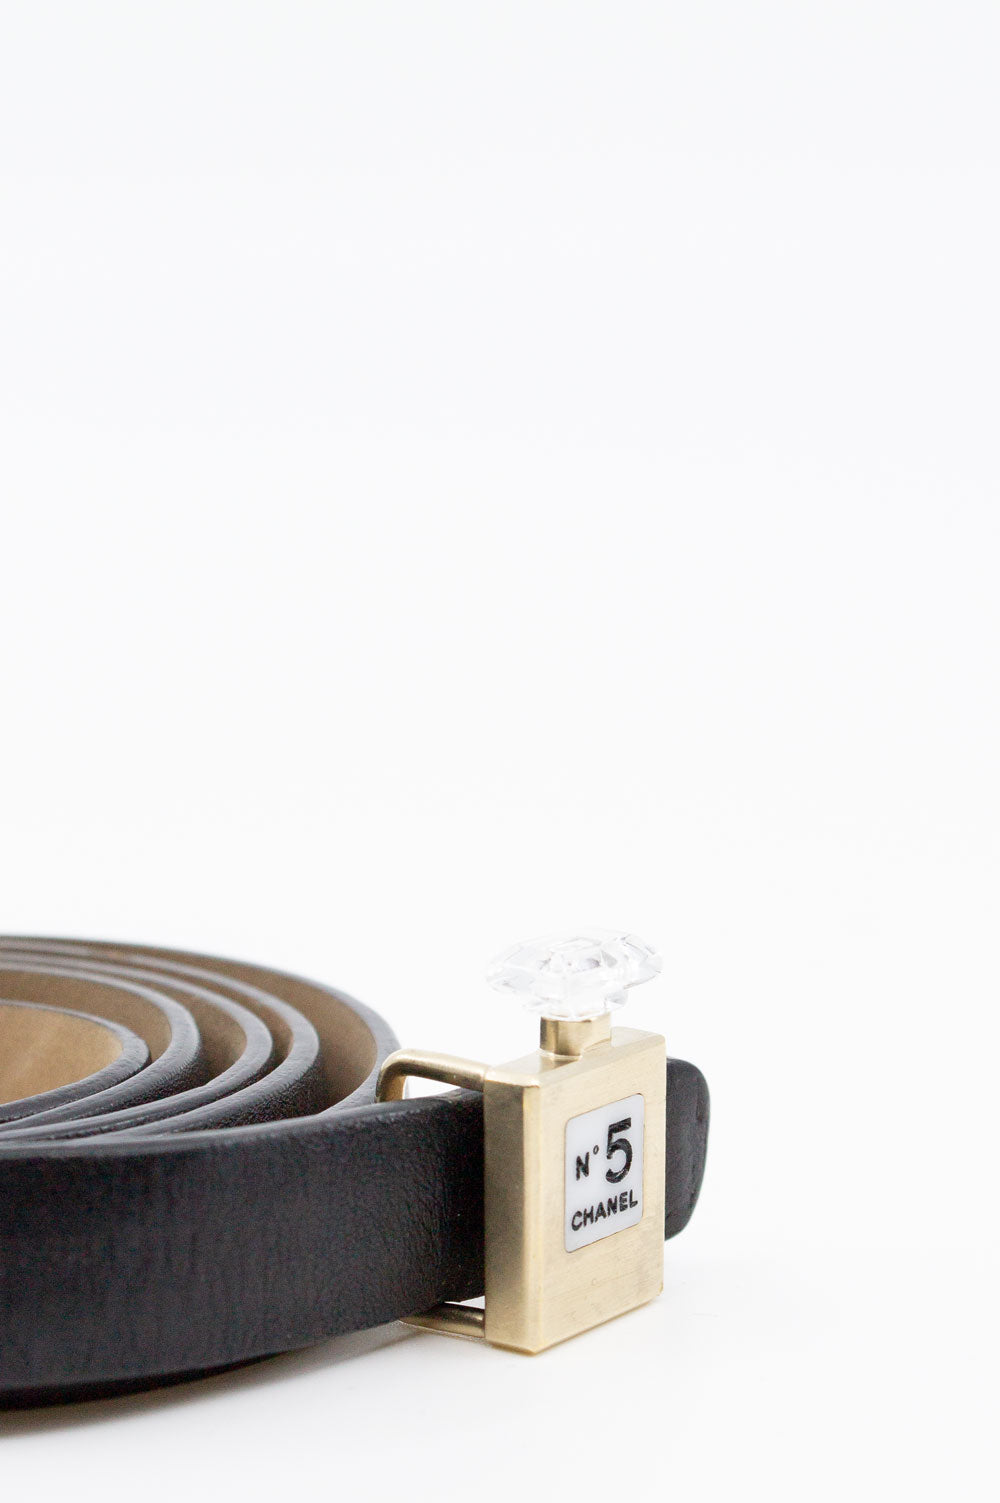 CHANEL No 5 Leather Belt